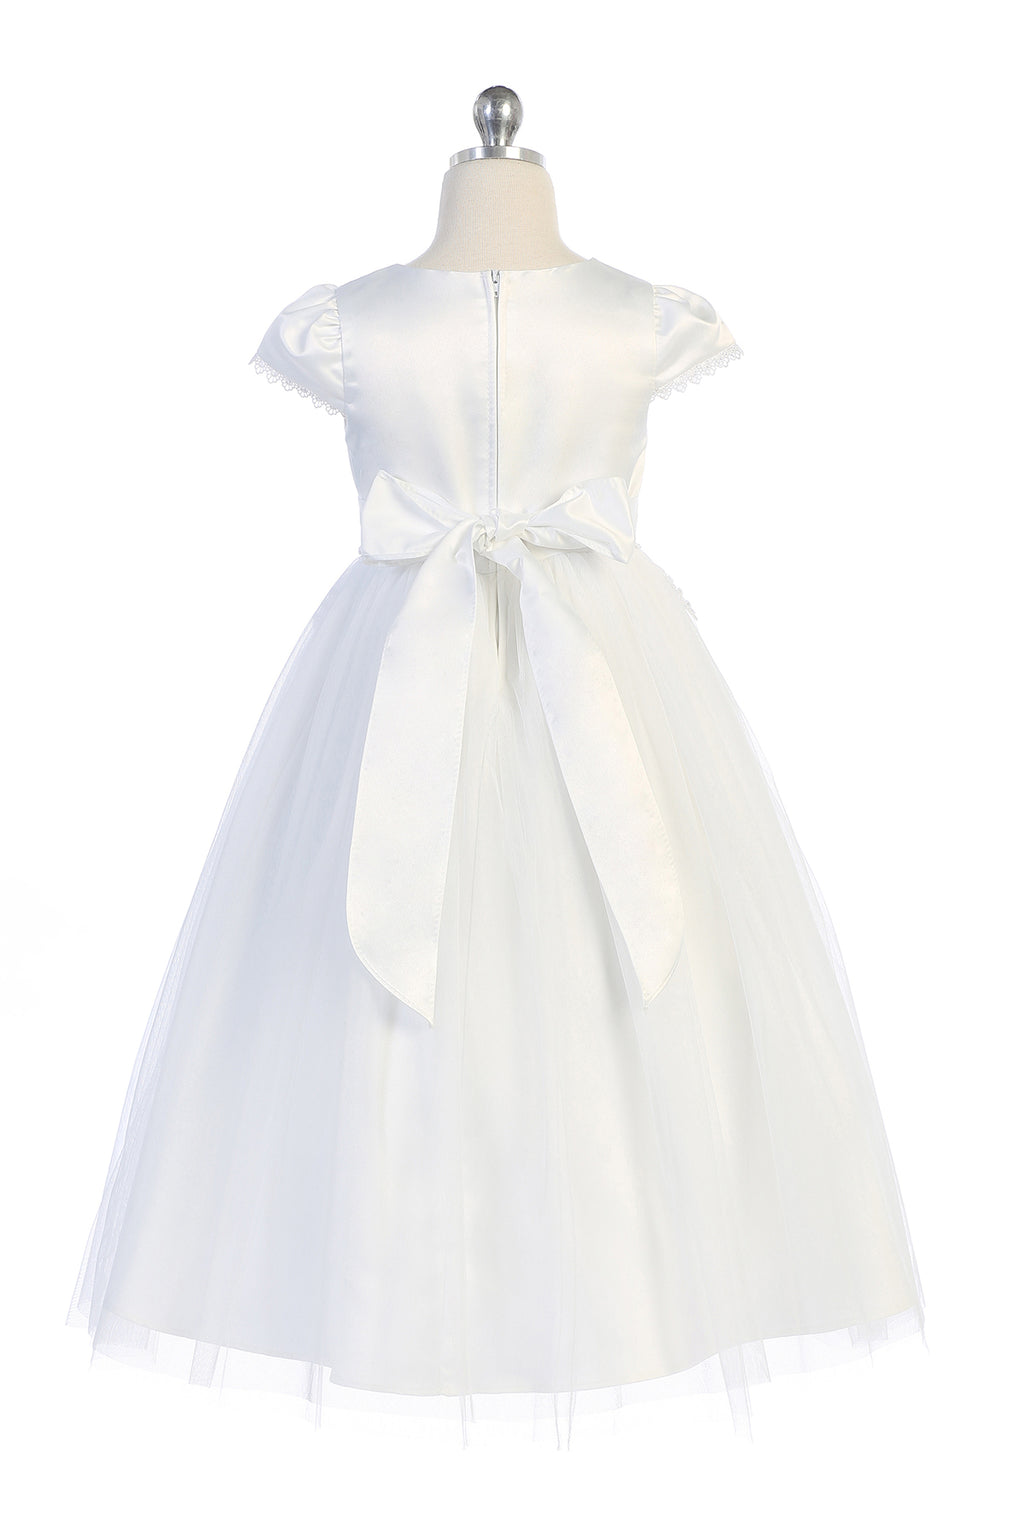 White satin flower girl dress with bow and embroidery on cap sleeves and waist